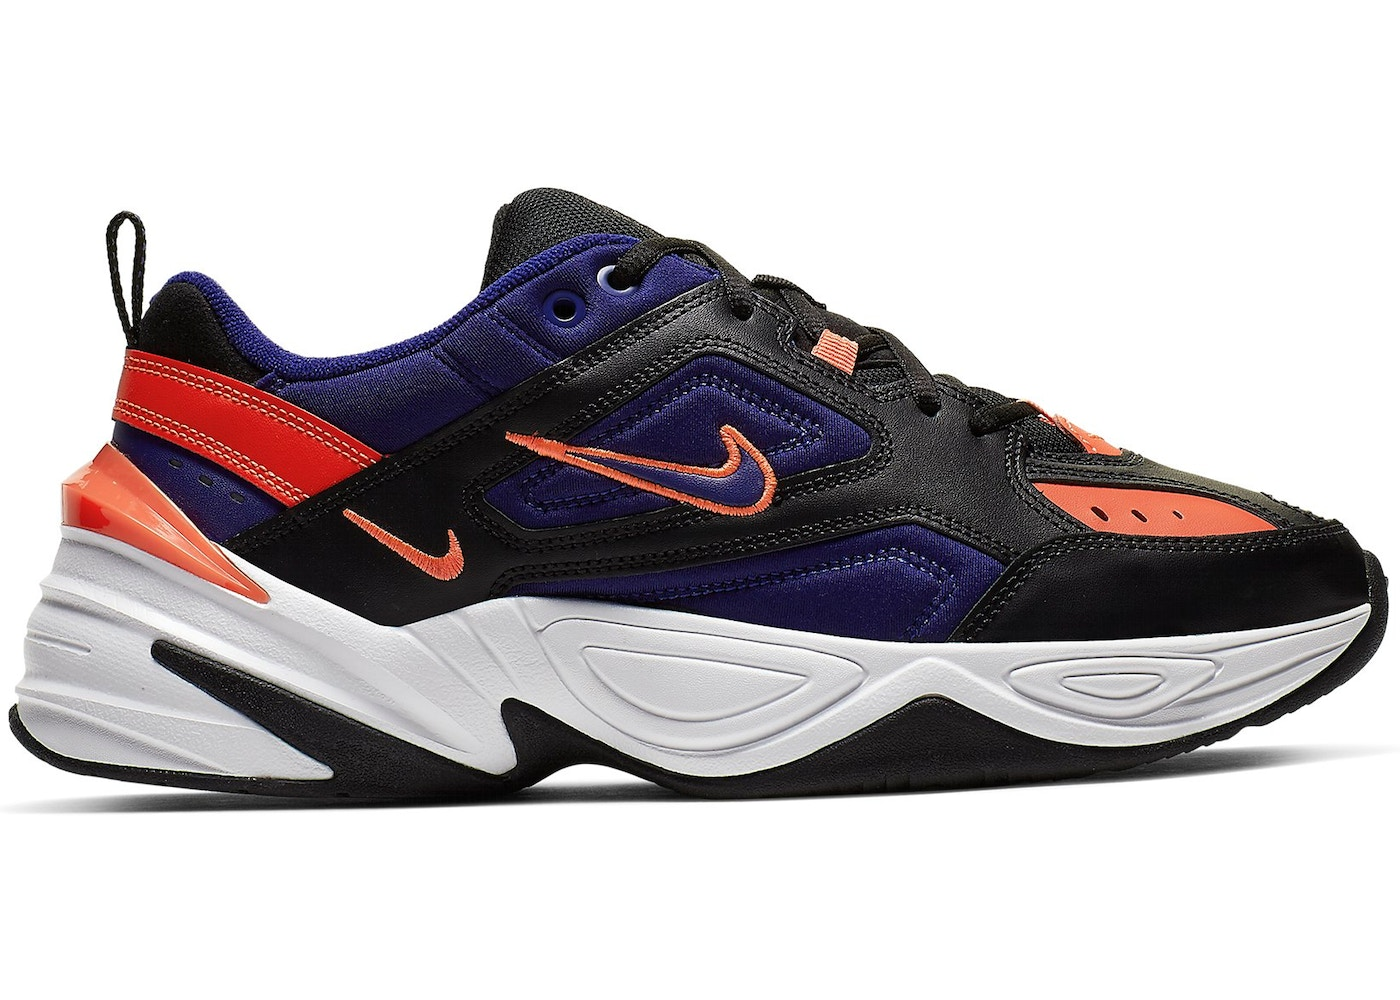 8bb45861 Sell. or Ask. Size: 11. View All Bids. Nike M2K Tekno Black Deep Royal Blue  Bright Crimson